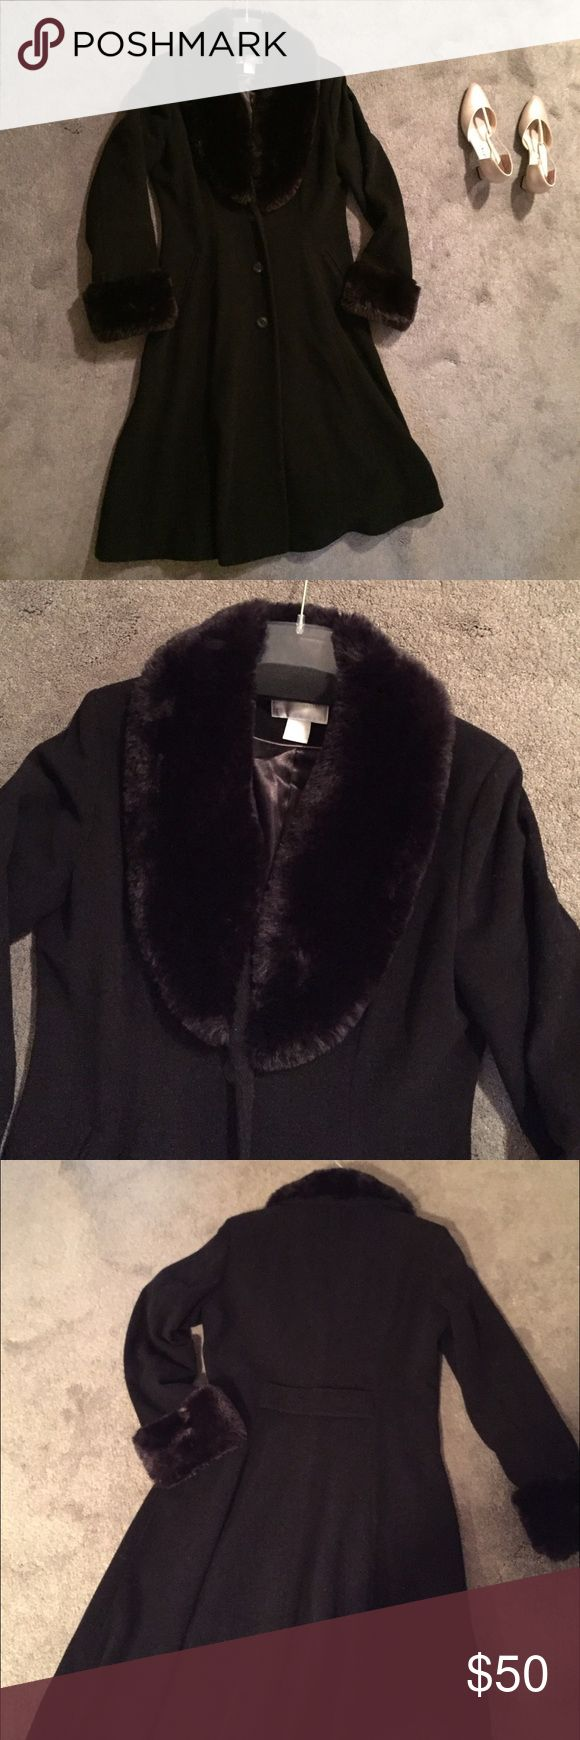 """WOOL COAT W FAUX FUR EUC This fully lined black wool dress coat (in perfect condition) will keep you toasty warm in elegant style! Generous faux soft fur at the neck & sleeves. You'll love the luxurious feel of it! Fitted waist. Gently flows out at the skirt. 3 large black front buttons. 2 functioning slit pockets in front. 48"""" long. Hits below the knee. Faux back belt nips the waist for style. 70% wool, 20% nylon, 10% recycled cashmere. Worthington Jackets & Coats"""